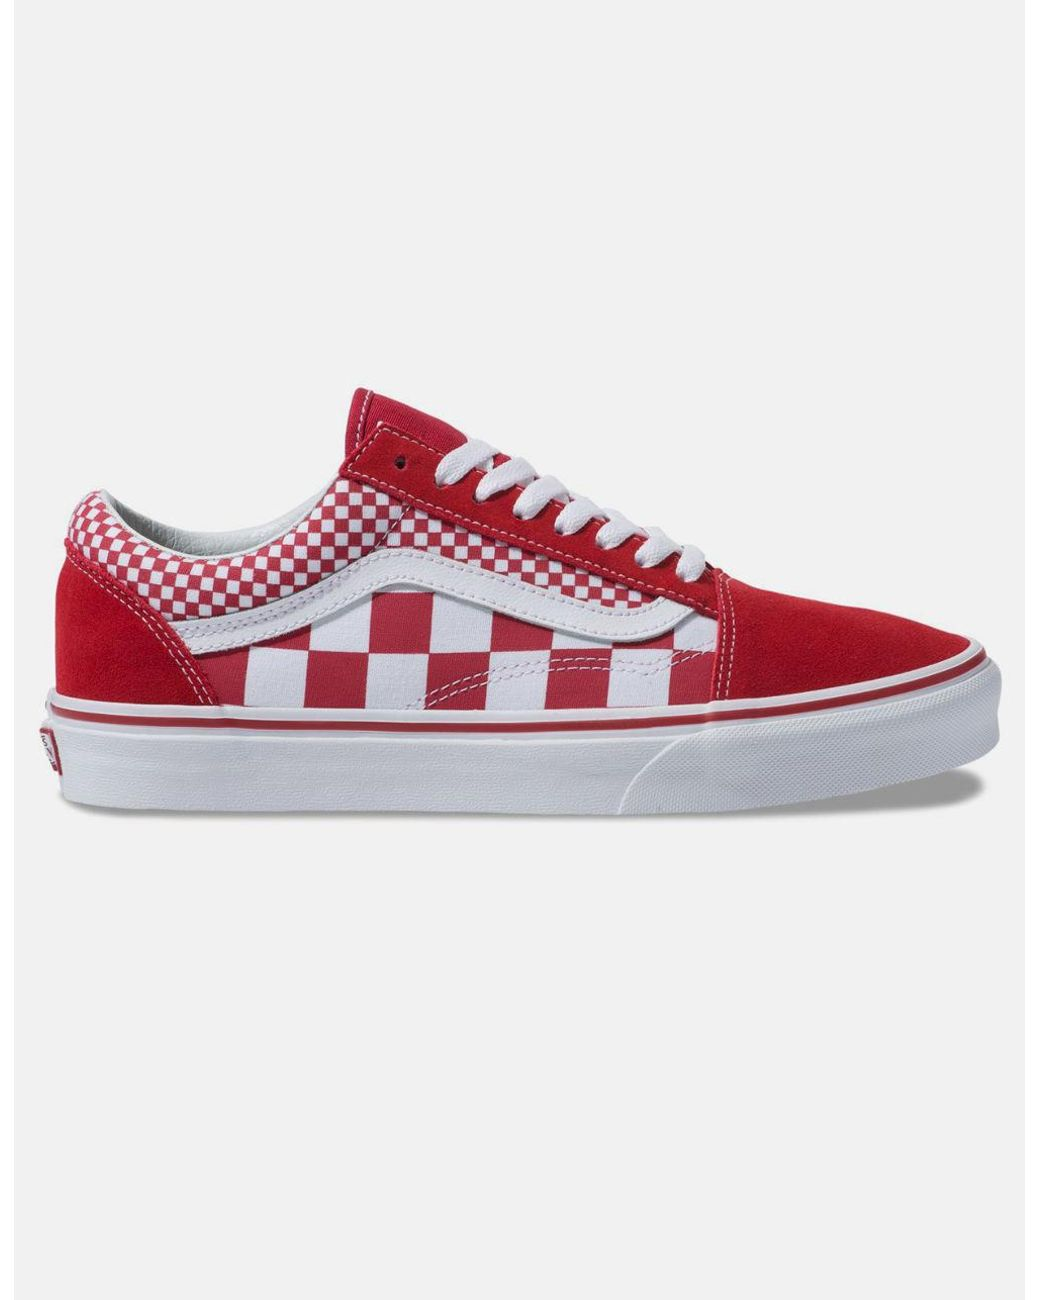 3d0823614e Lyst - Vans Red Mix Checker Old Skool Shoes in Red for Men - Save 23%